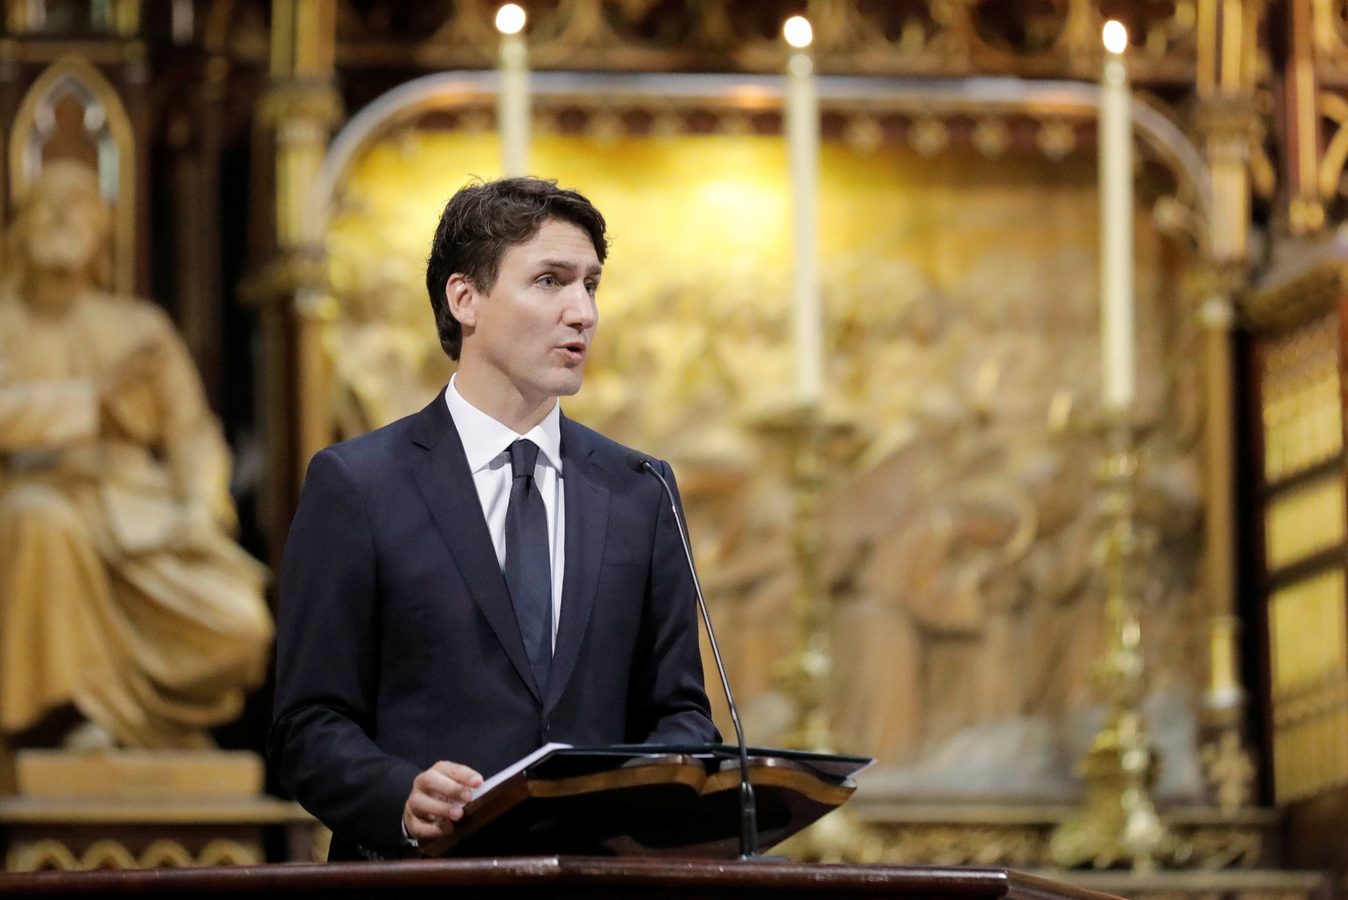 Canadian Prime Minister Justin Trudeau addresses the congregation during the ceremonial Mass on May 17, 2017, at Notre-Dame Basilica in Montreal for the city's 375th birthday celebrations. (CNS photo/Dario Ayala, Reuters)